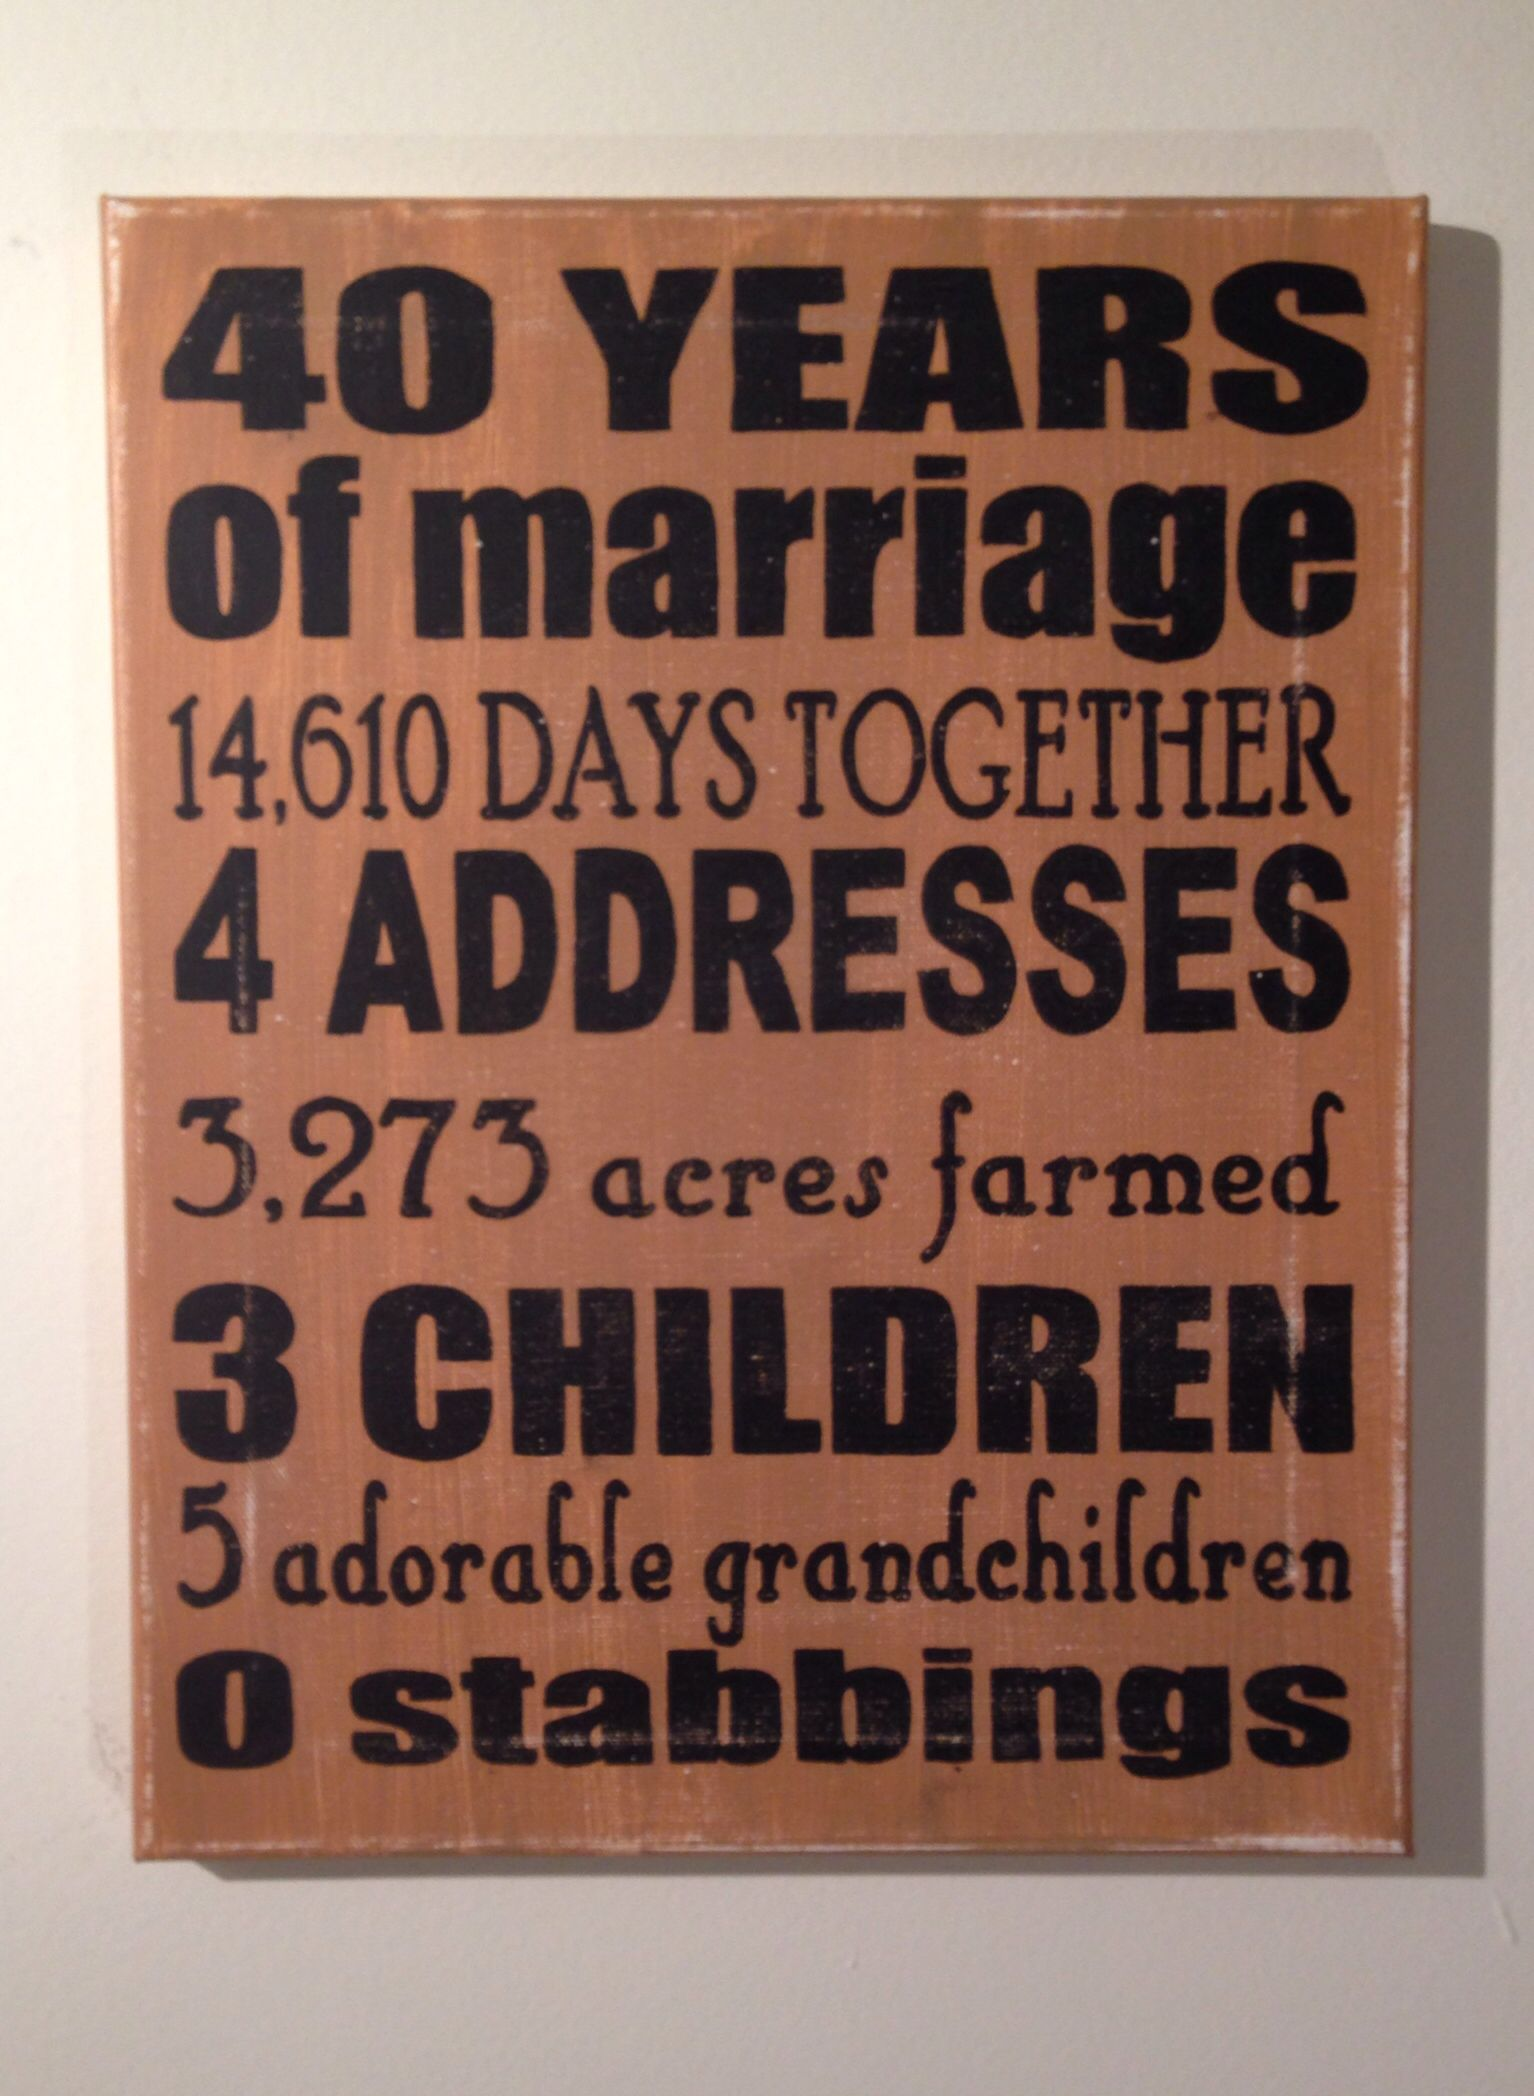 Wedding Anniversary Gift For Parents: Wedding Anniversary Gifts: 20th Wedding Anniversary Gifts